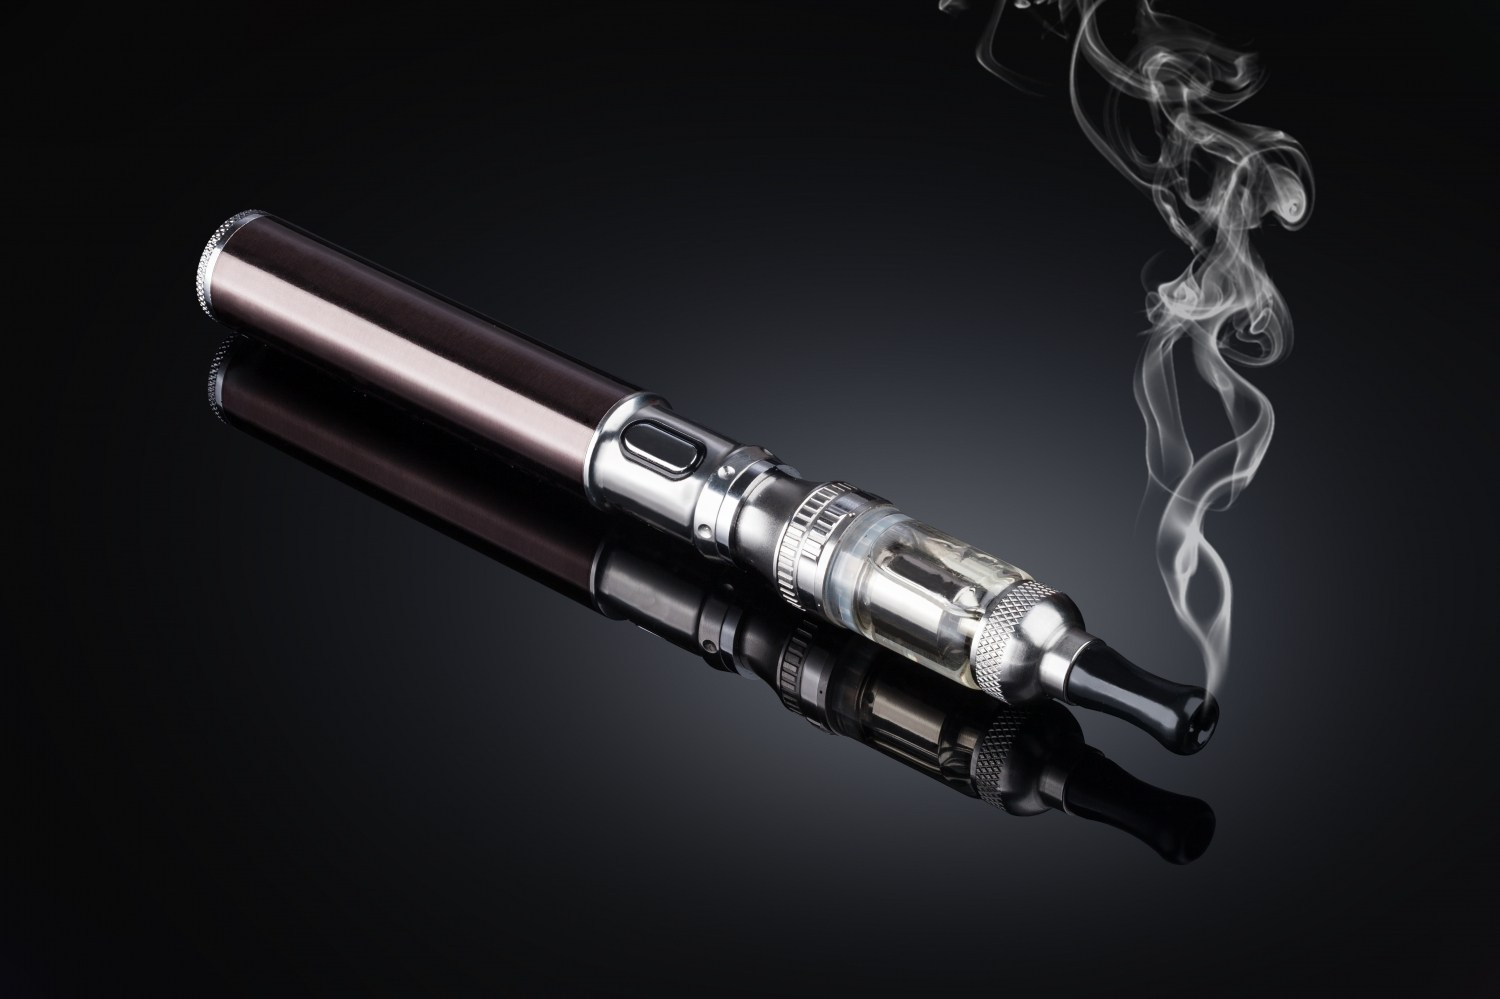 You may need to give up e-cigarettes prior to plastic surgery. To learn more, call Greenwood plastic surgeon Dr. Ted Vaughn at 864-223-0505 today